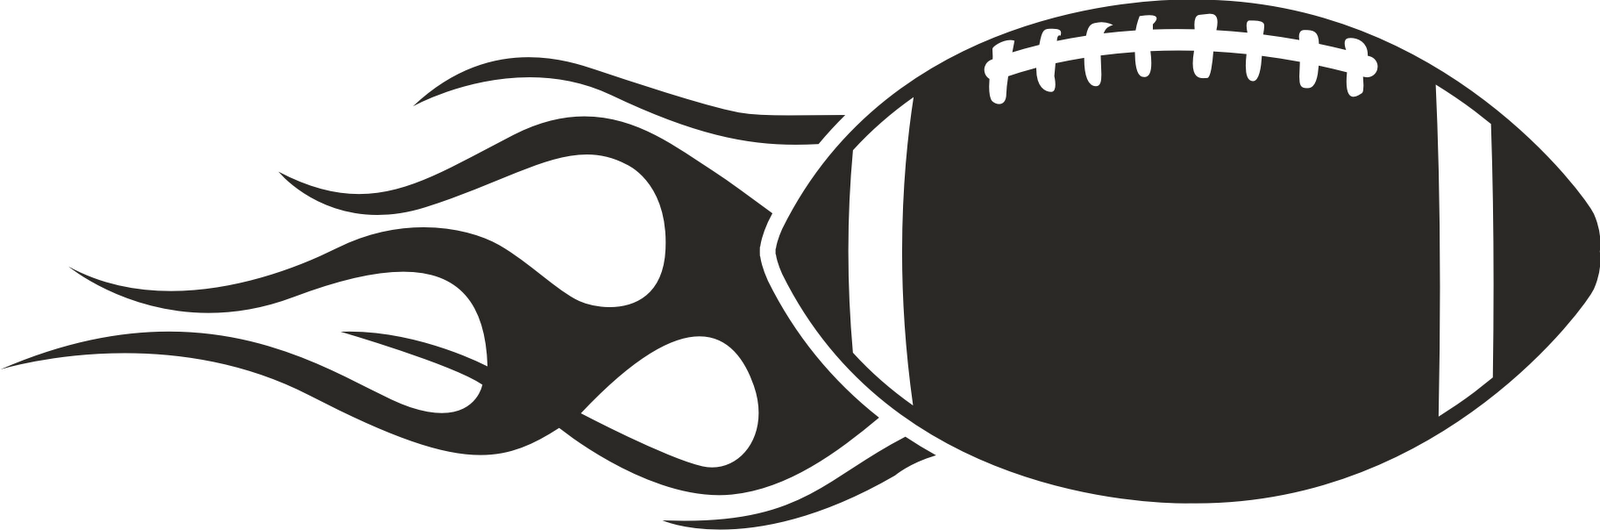 Football black and white black football clipart free lyne visualdnsnet